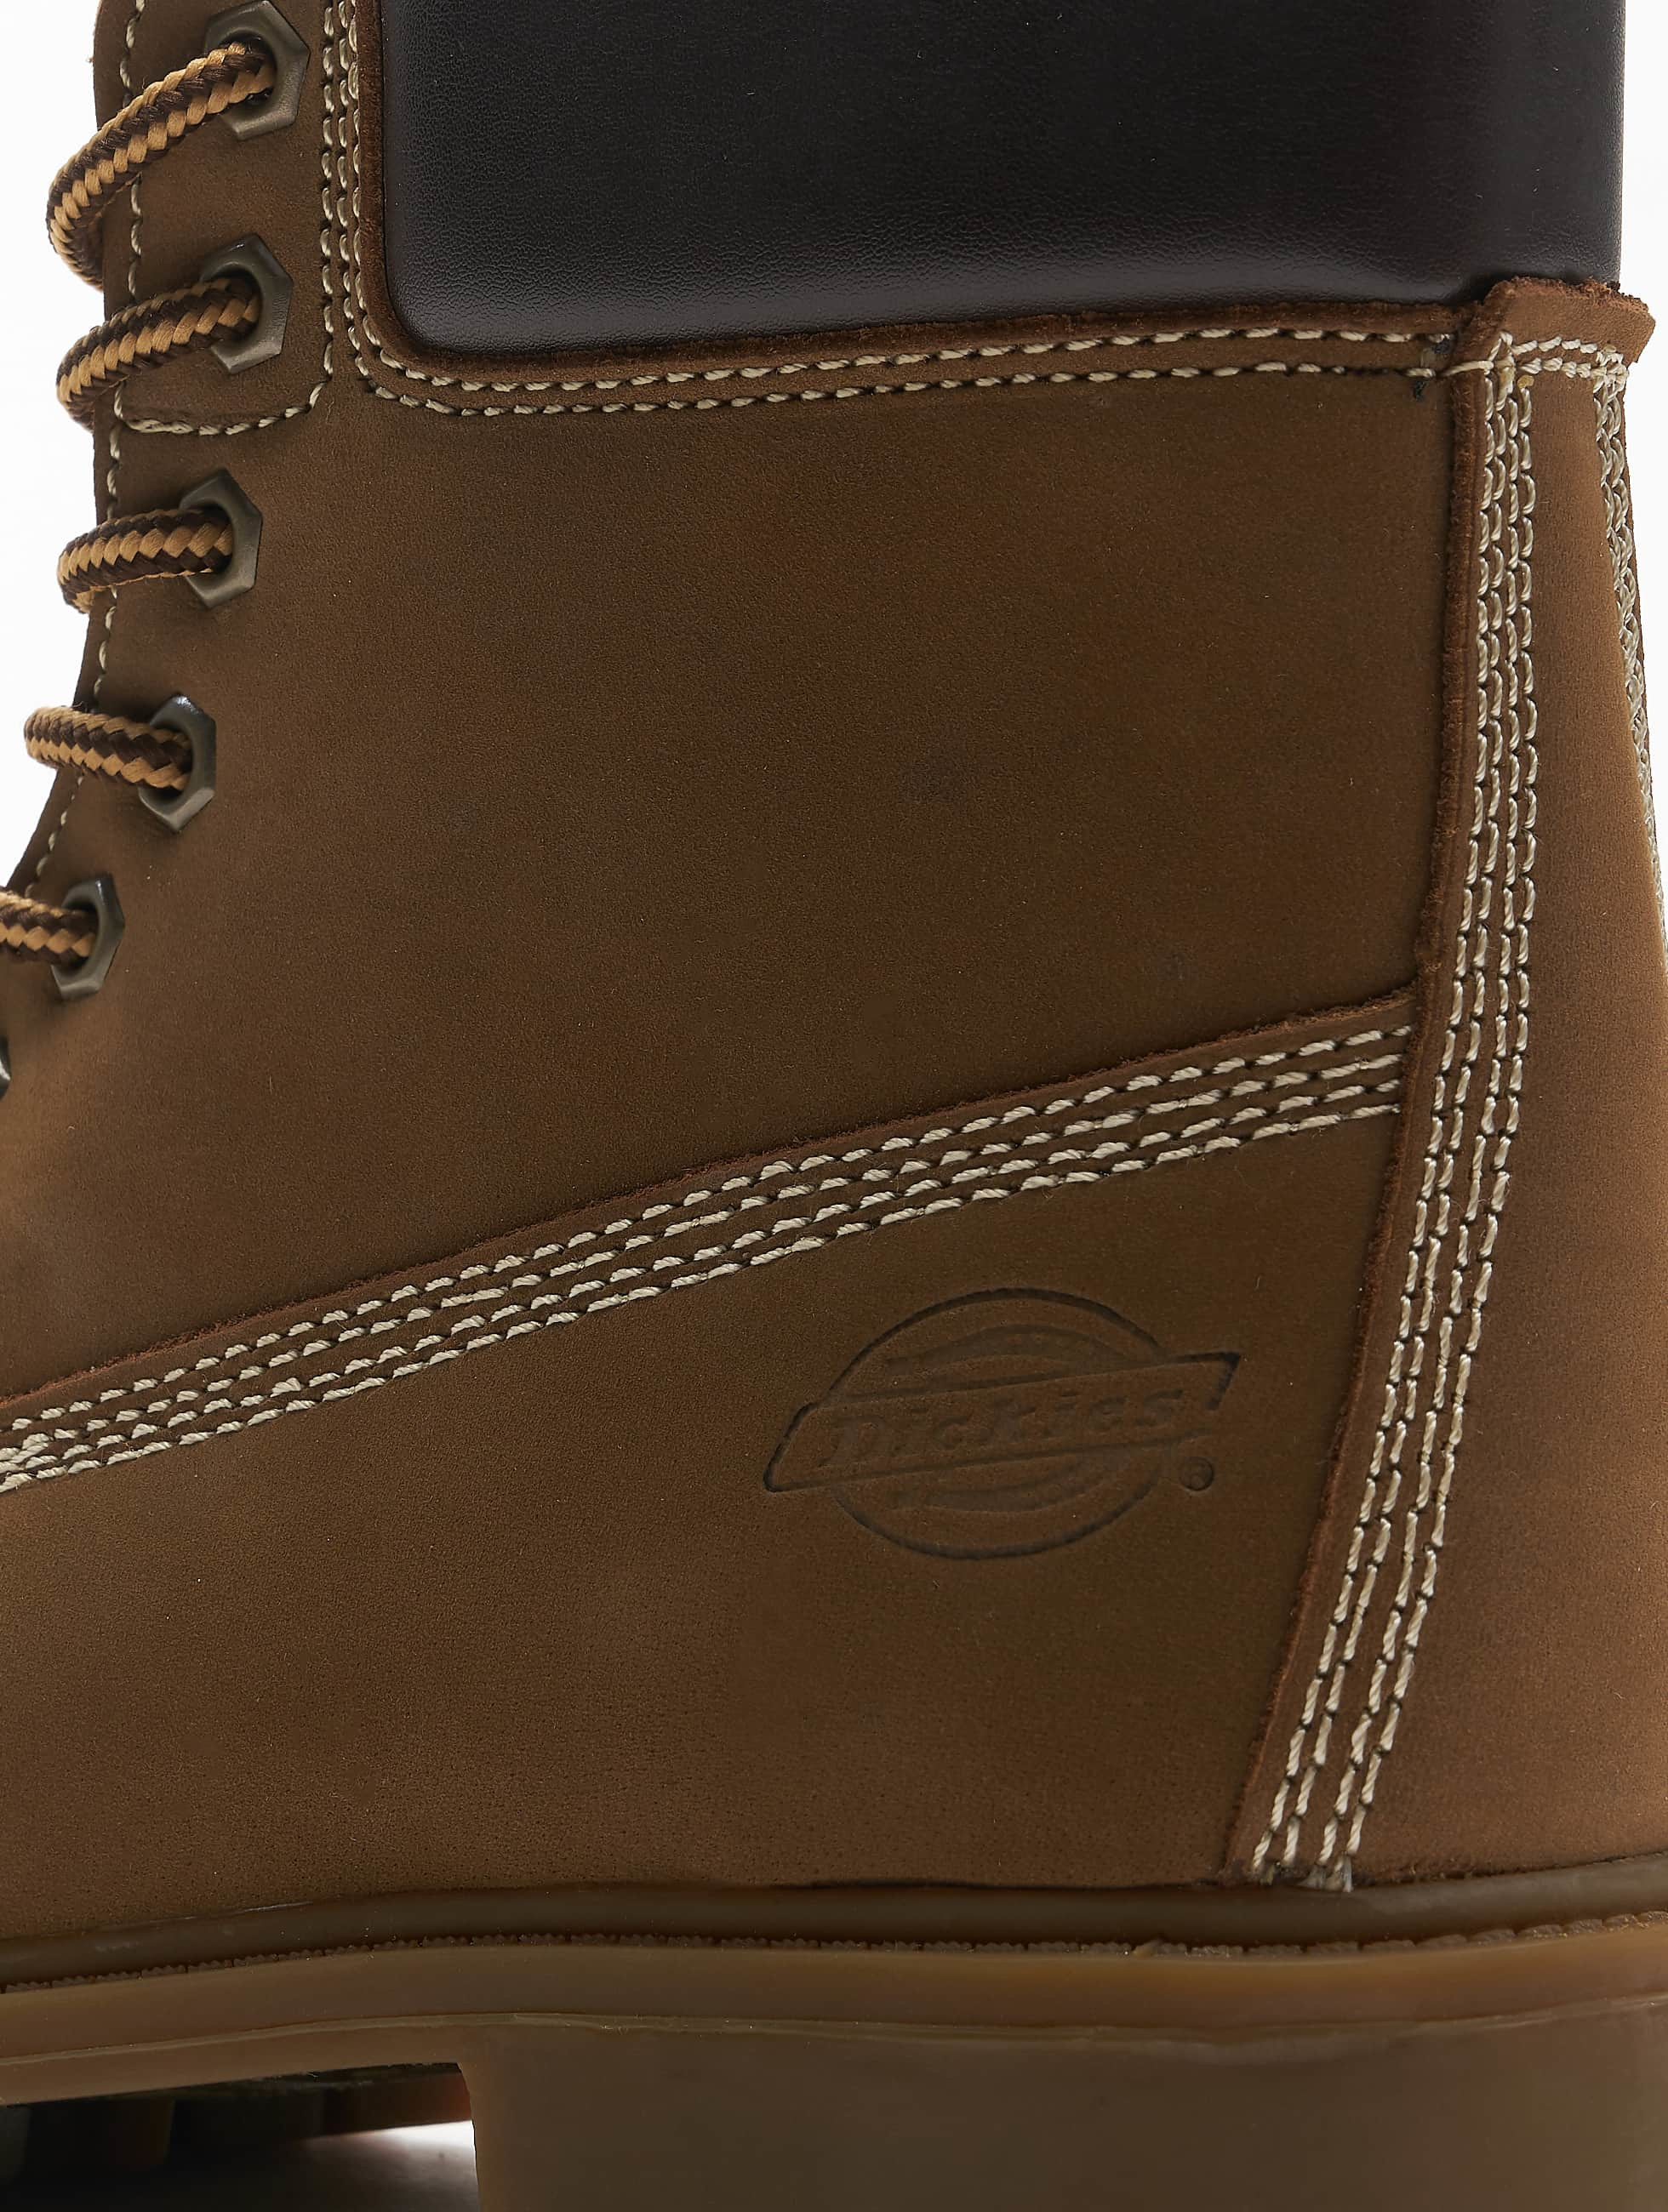 Dickies Boots Fort Worth braun